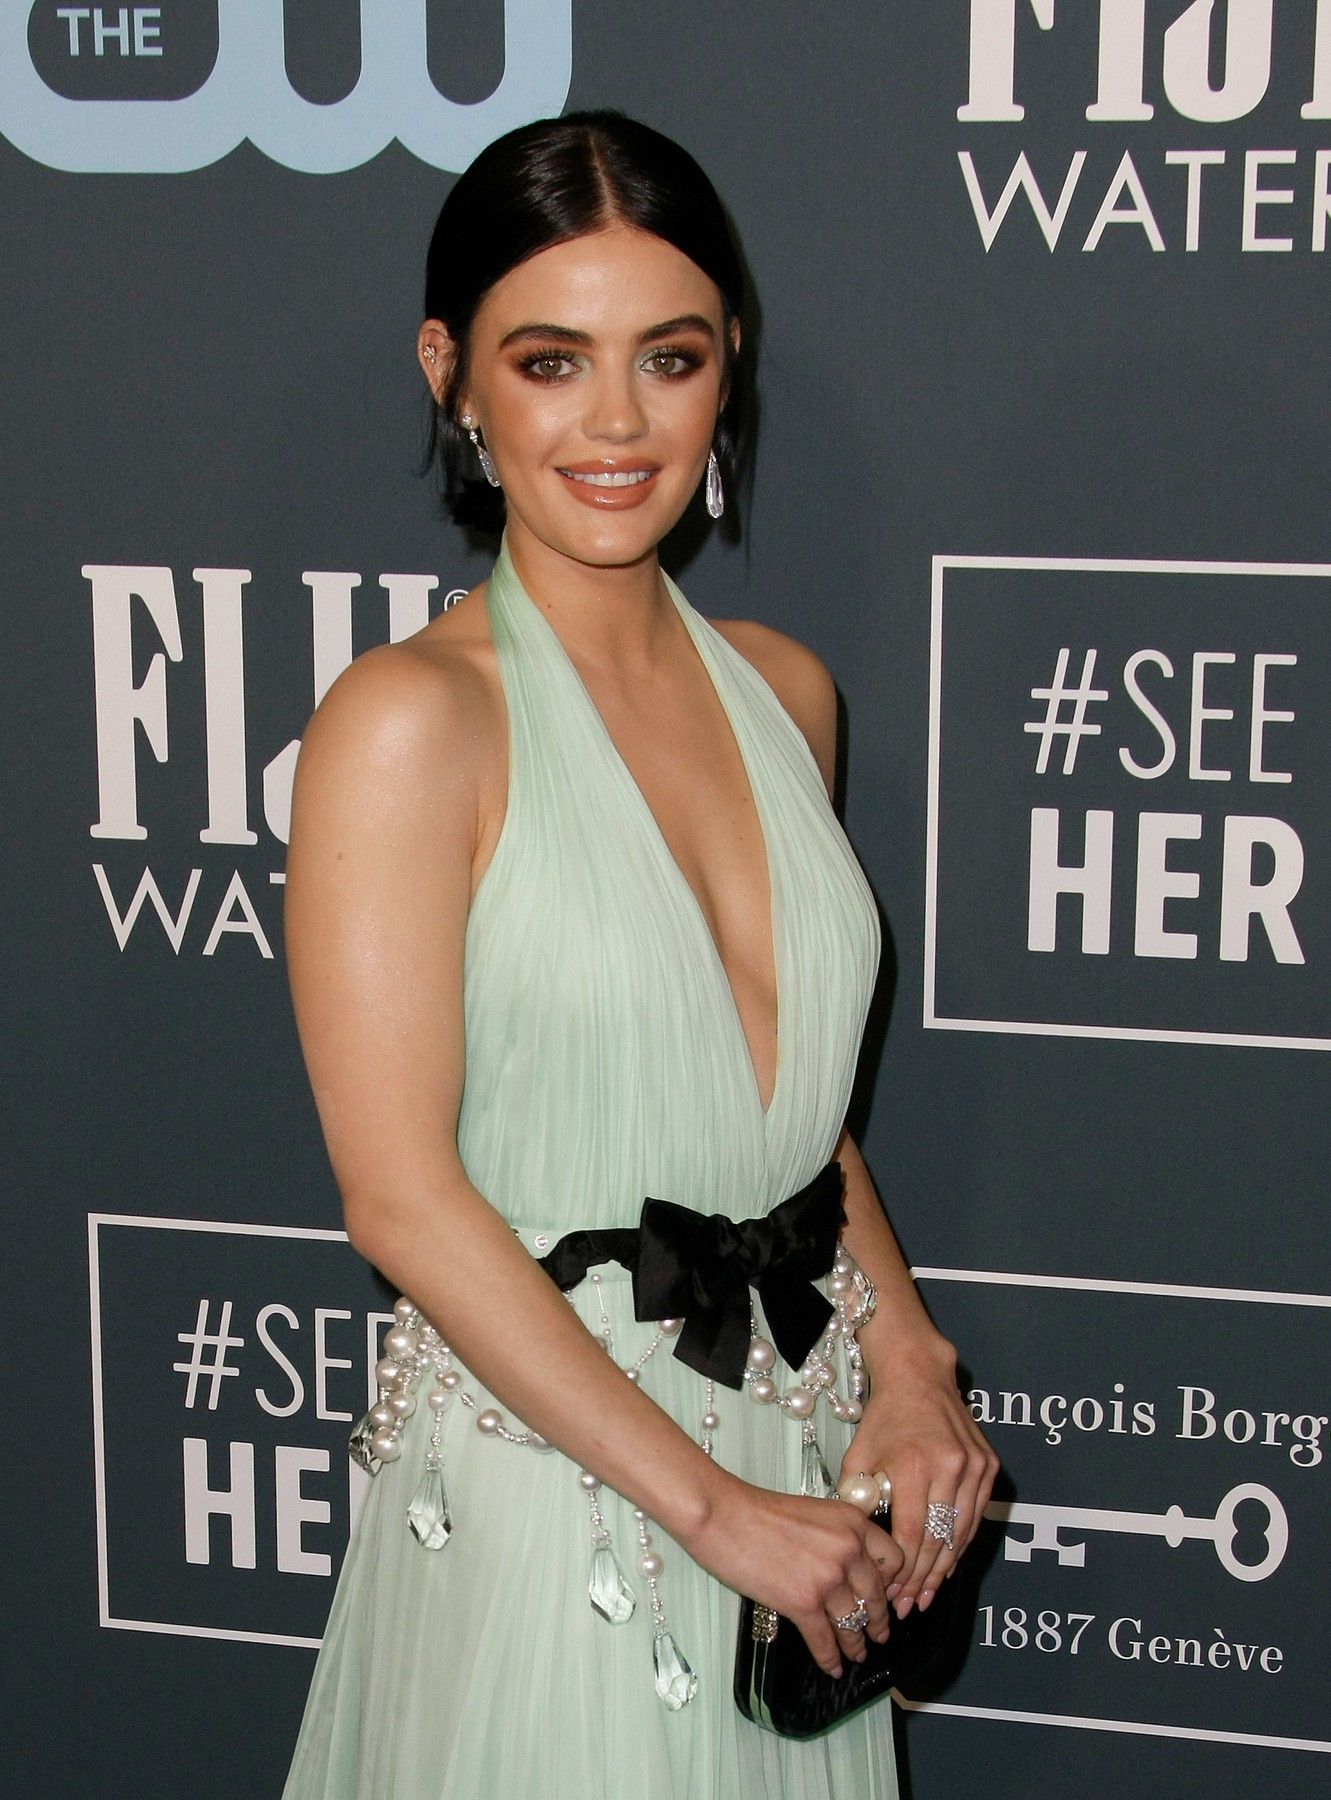 Lucy Hale 25th Annual Critics' Choice Awards, Arrivals, Barker Hanger, Los Angeles, USA - 12 Jan 2020, Image: 492412693, License: Rights-managed, Restrictions: , Model Release: no, Credit line: CraSH/imageSPACE / Shutterstock Editorial / Profimedia